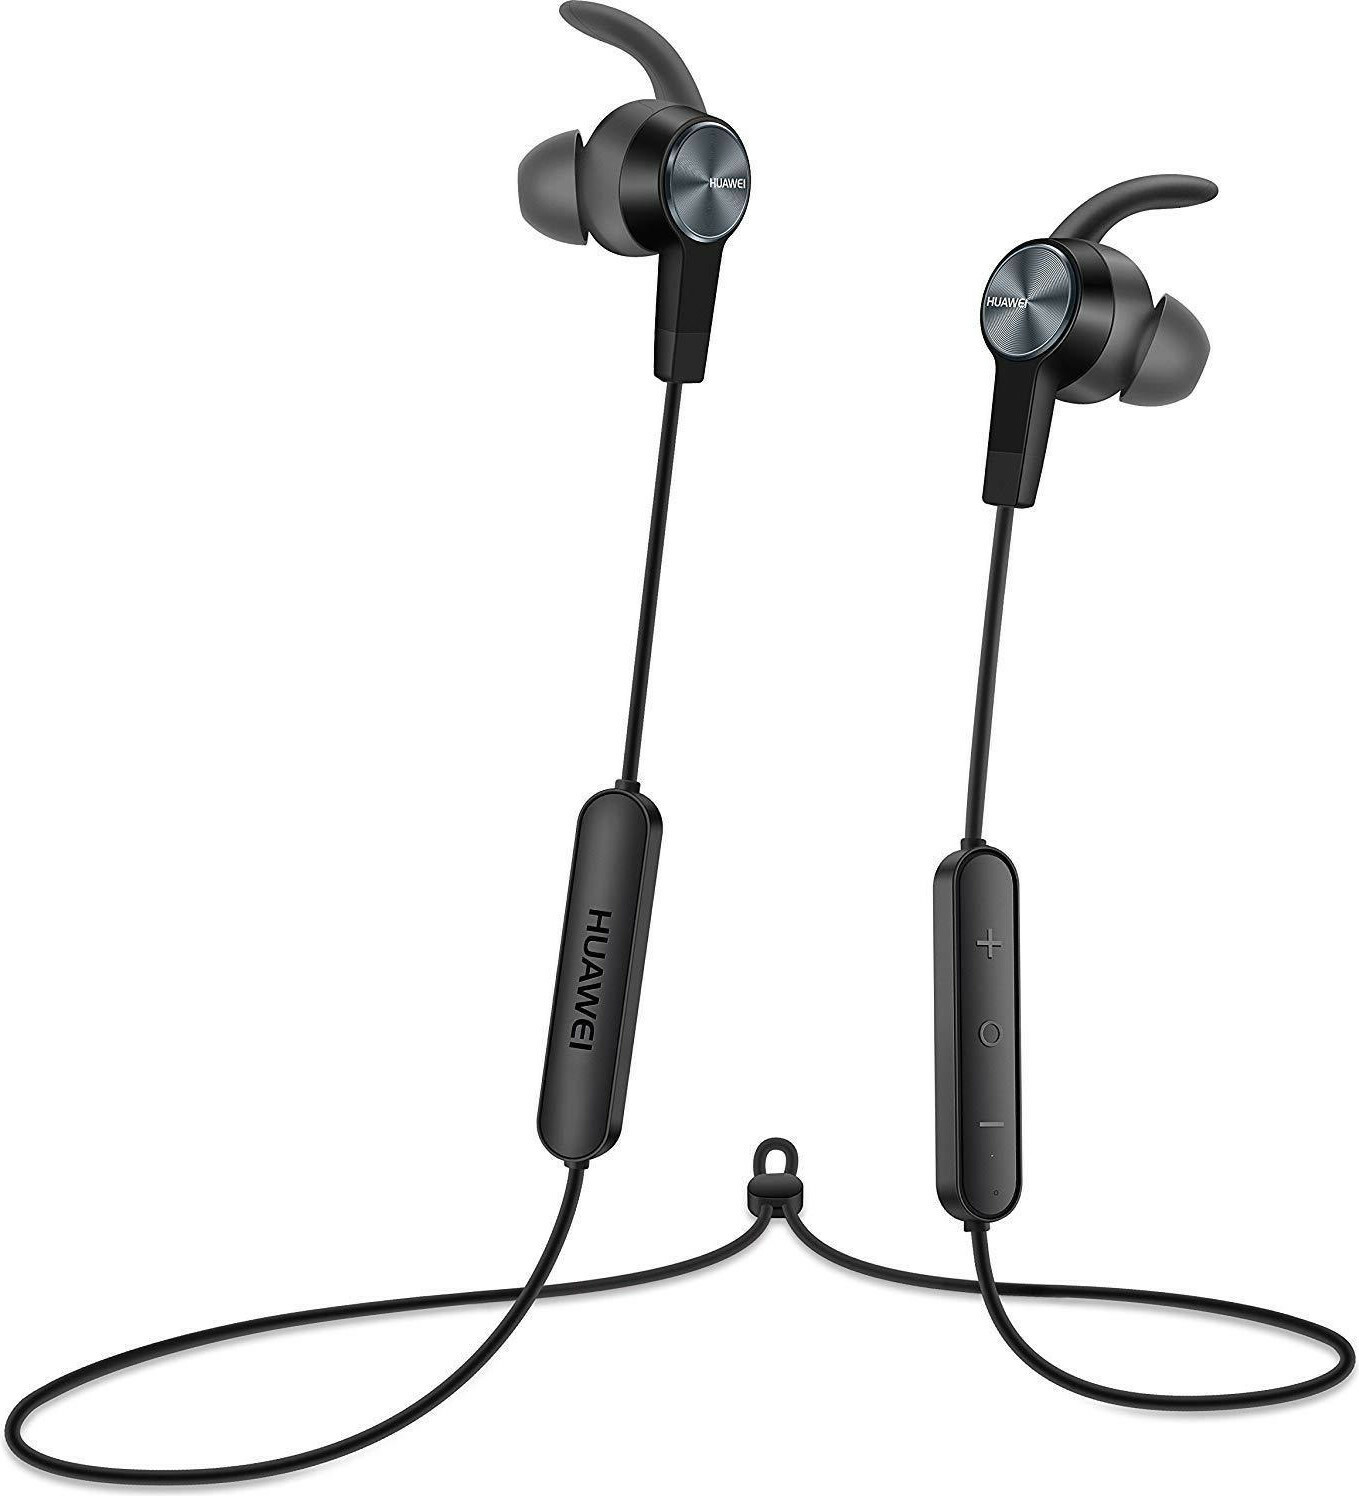 Huawei AM61 Bluetooth Stereo Sport Headset Black